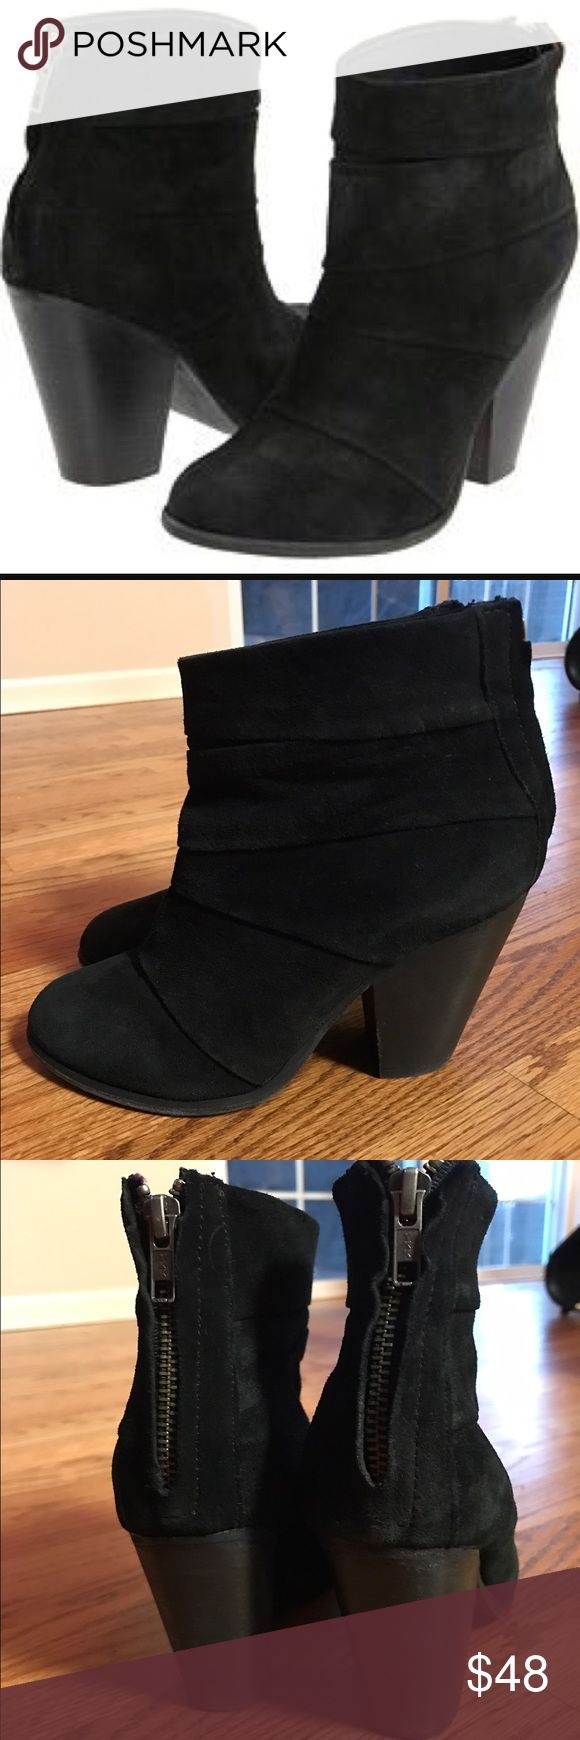 Steve Madden arrena bootie suede Steve Madden arrena bootie these have been gently worn there are some signs of wear but still have tons of life left in them perfect with every outfit Steve Madden Shoes Ankle Boots & Booties